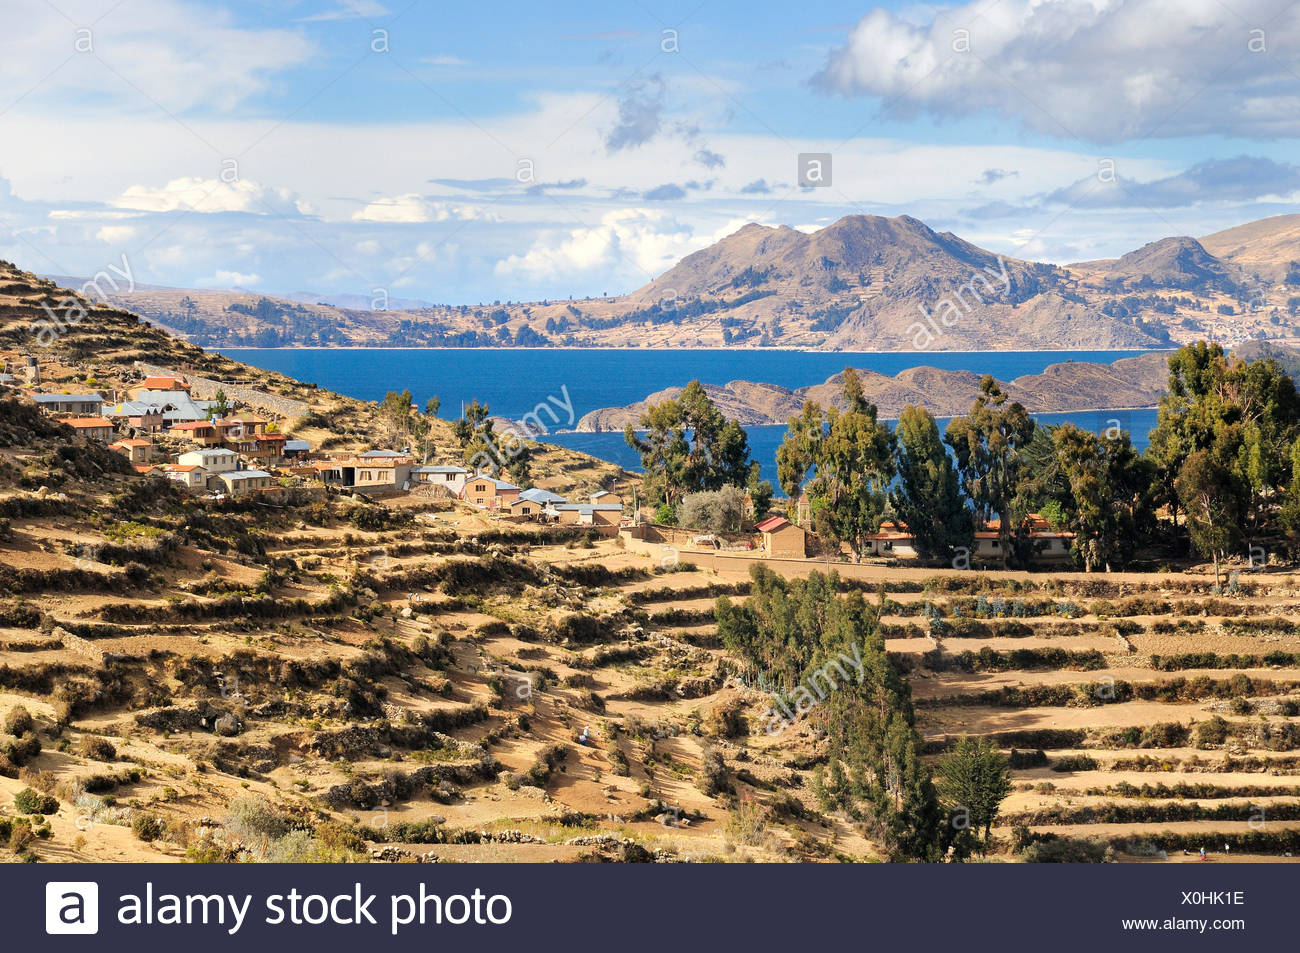 south america bolivia salt water - Stock Image